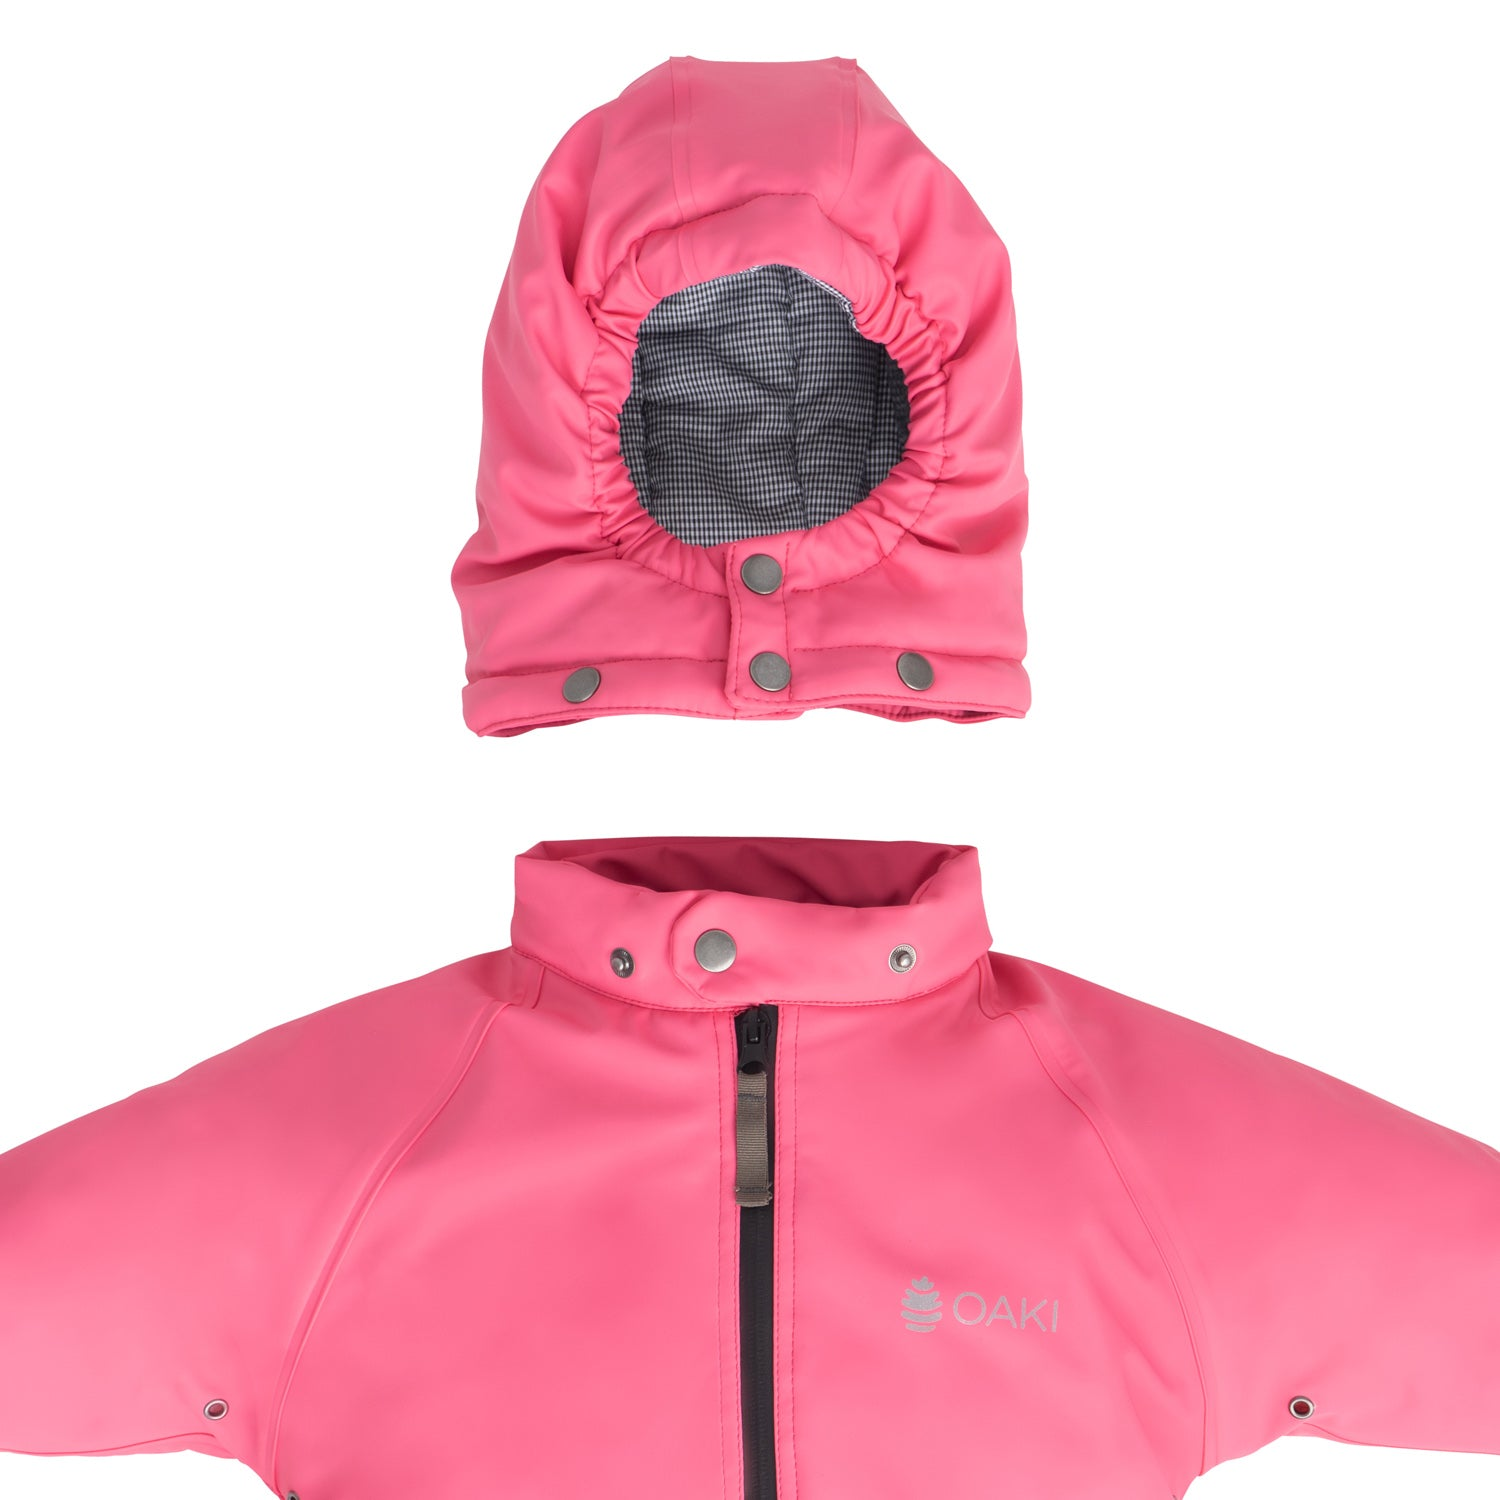 OAKI Snow Suit - Kids/Toddler Snowsuit - Park City Pink